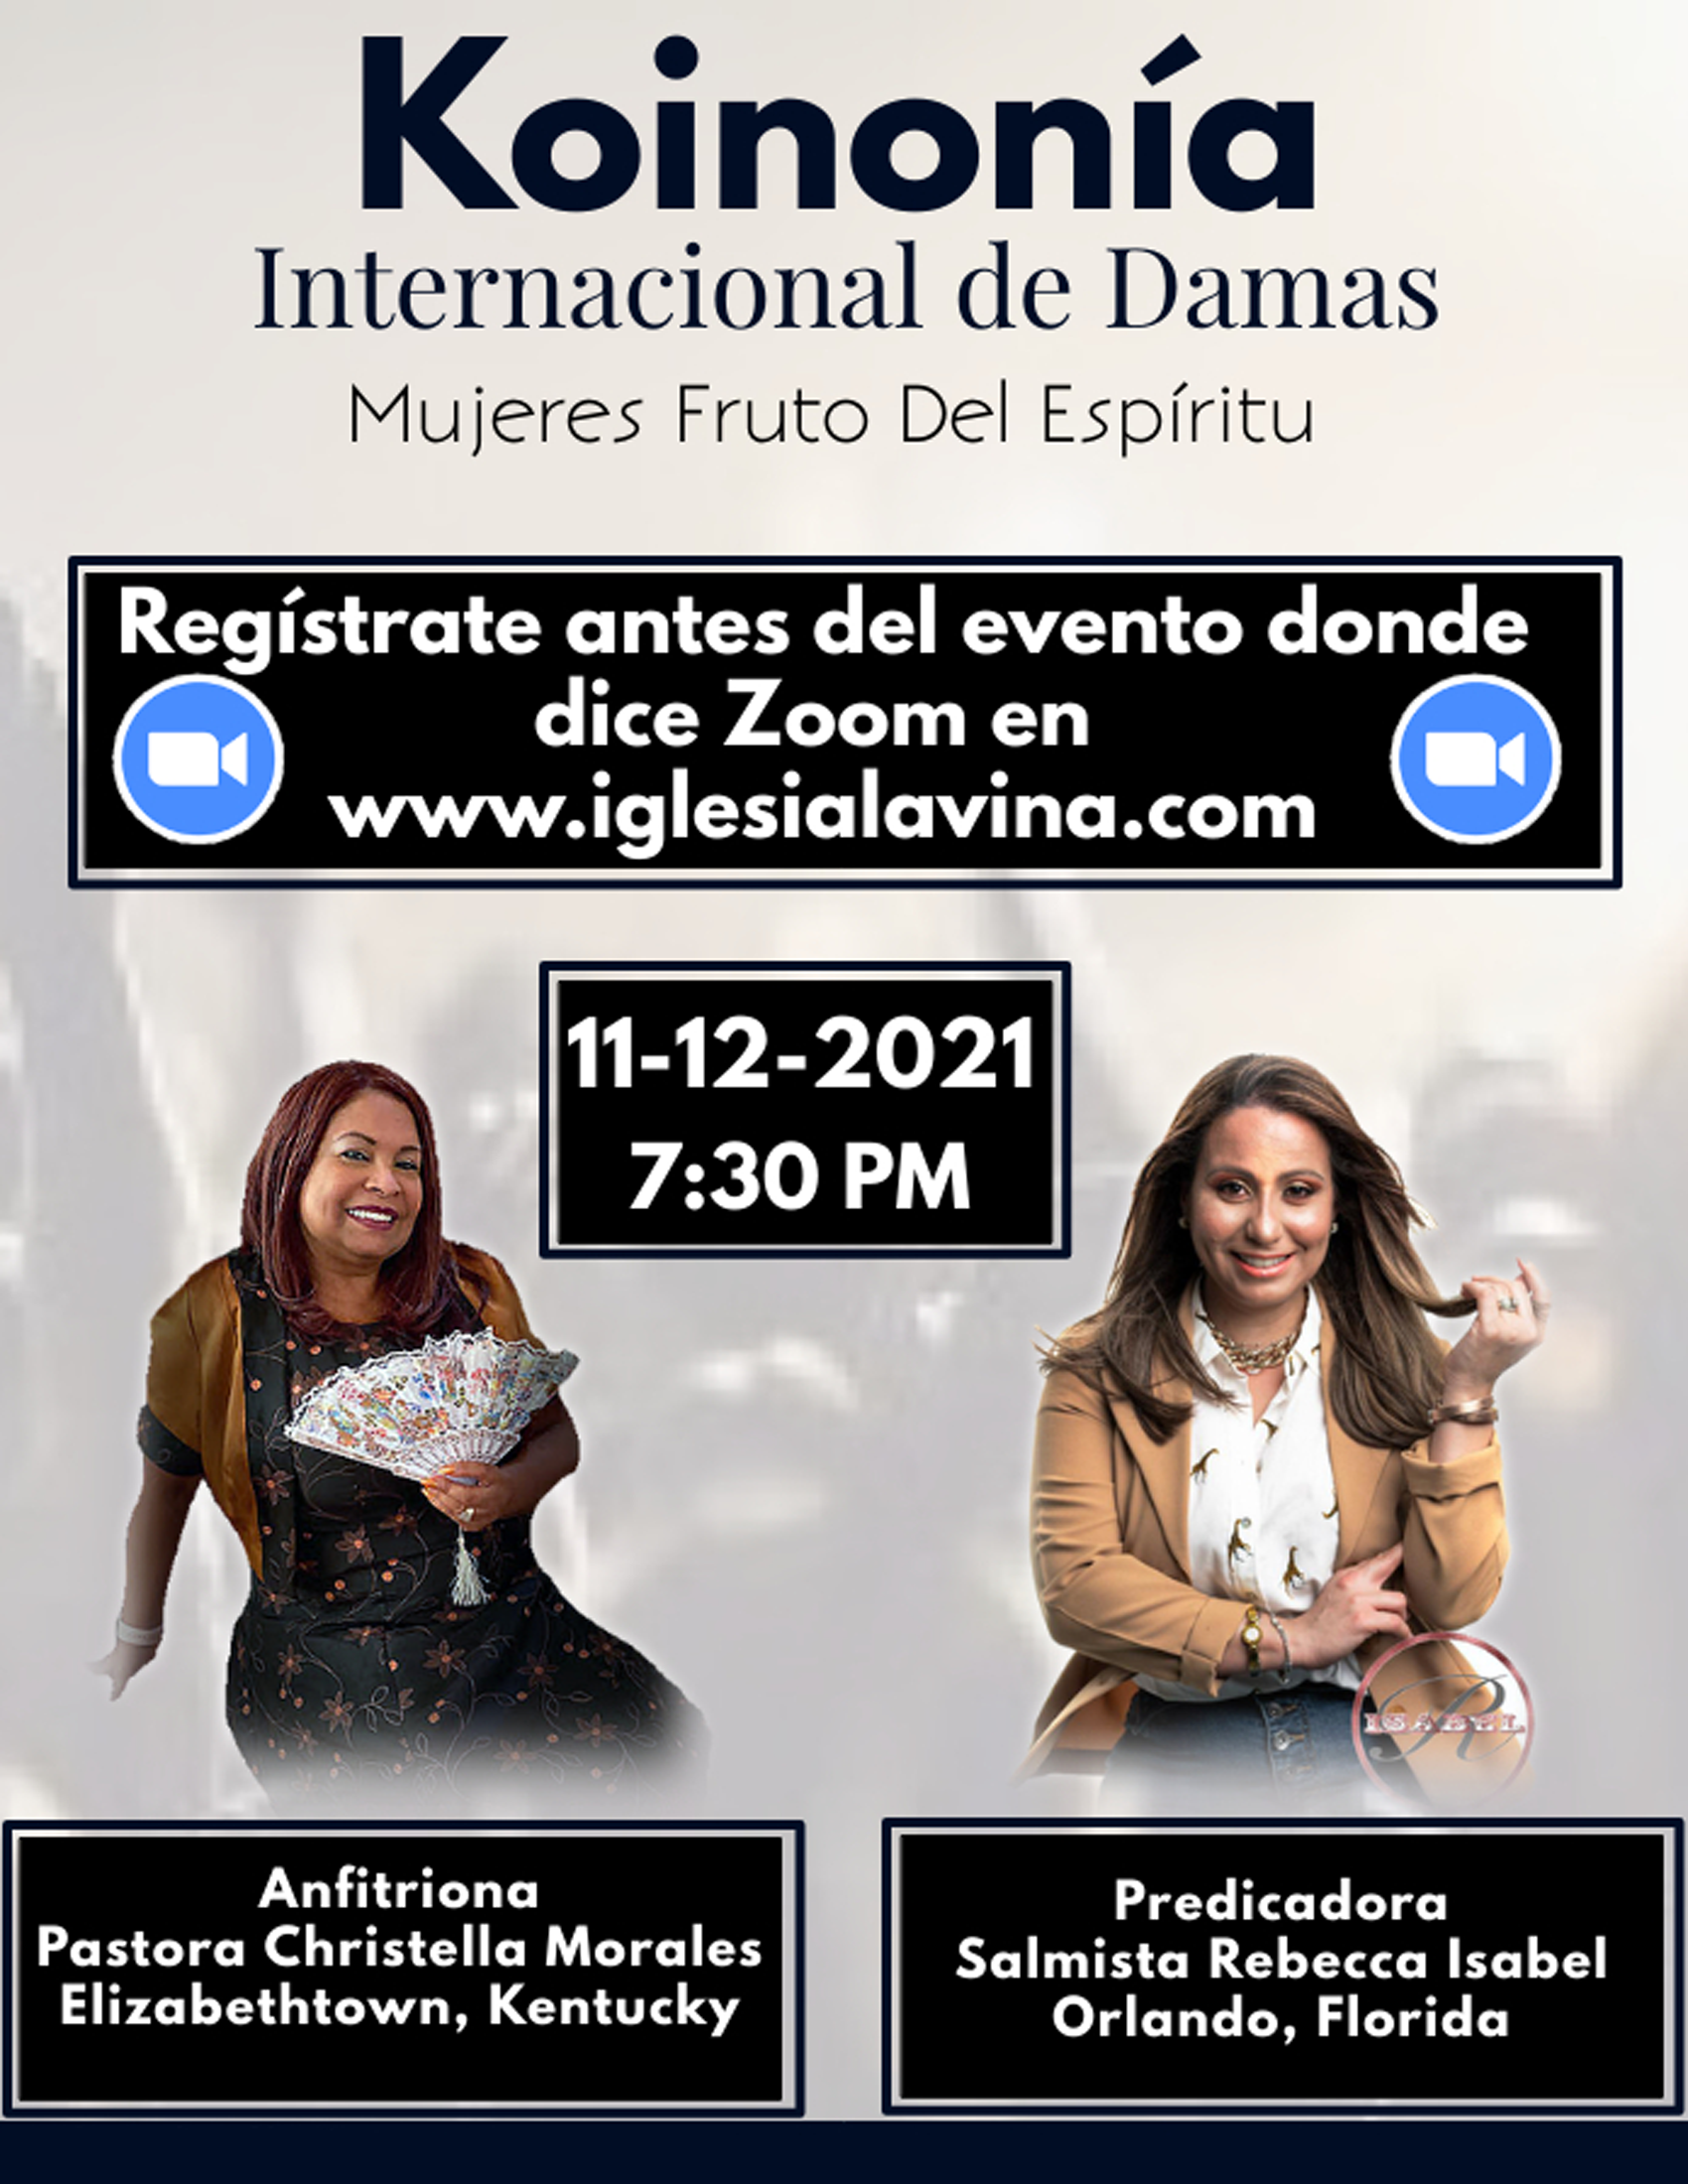 Koinonia de Damas 11-12-2021 Salmista Re